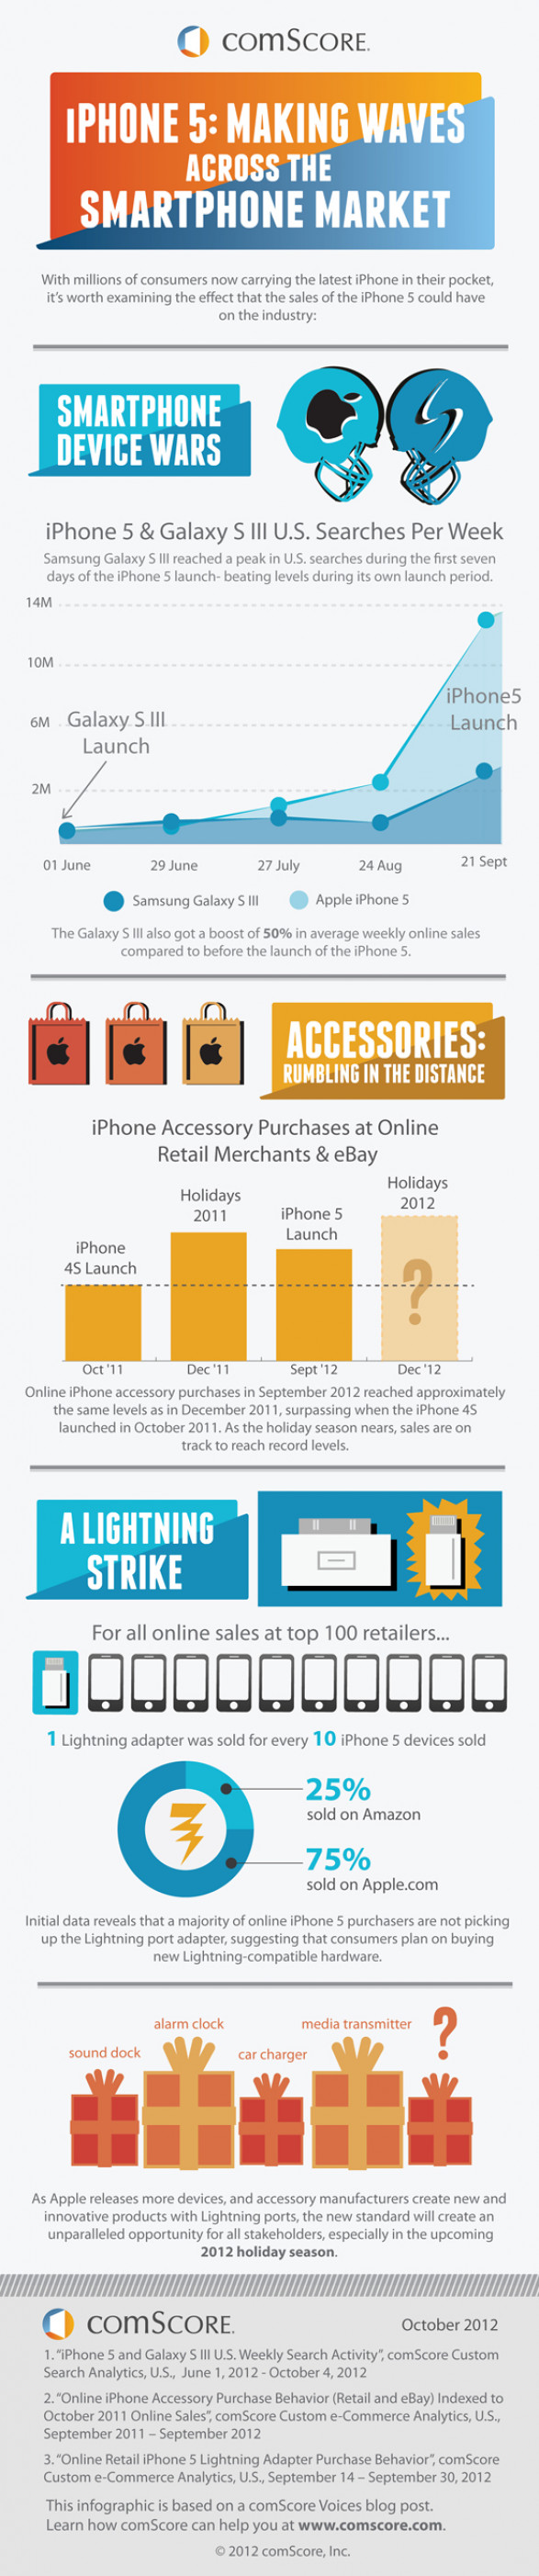 The iPhone Effect: How the iPhone 5 is Making Waves through the Smartphone Market